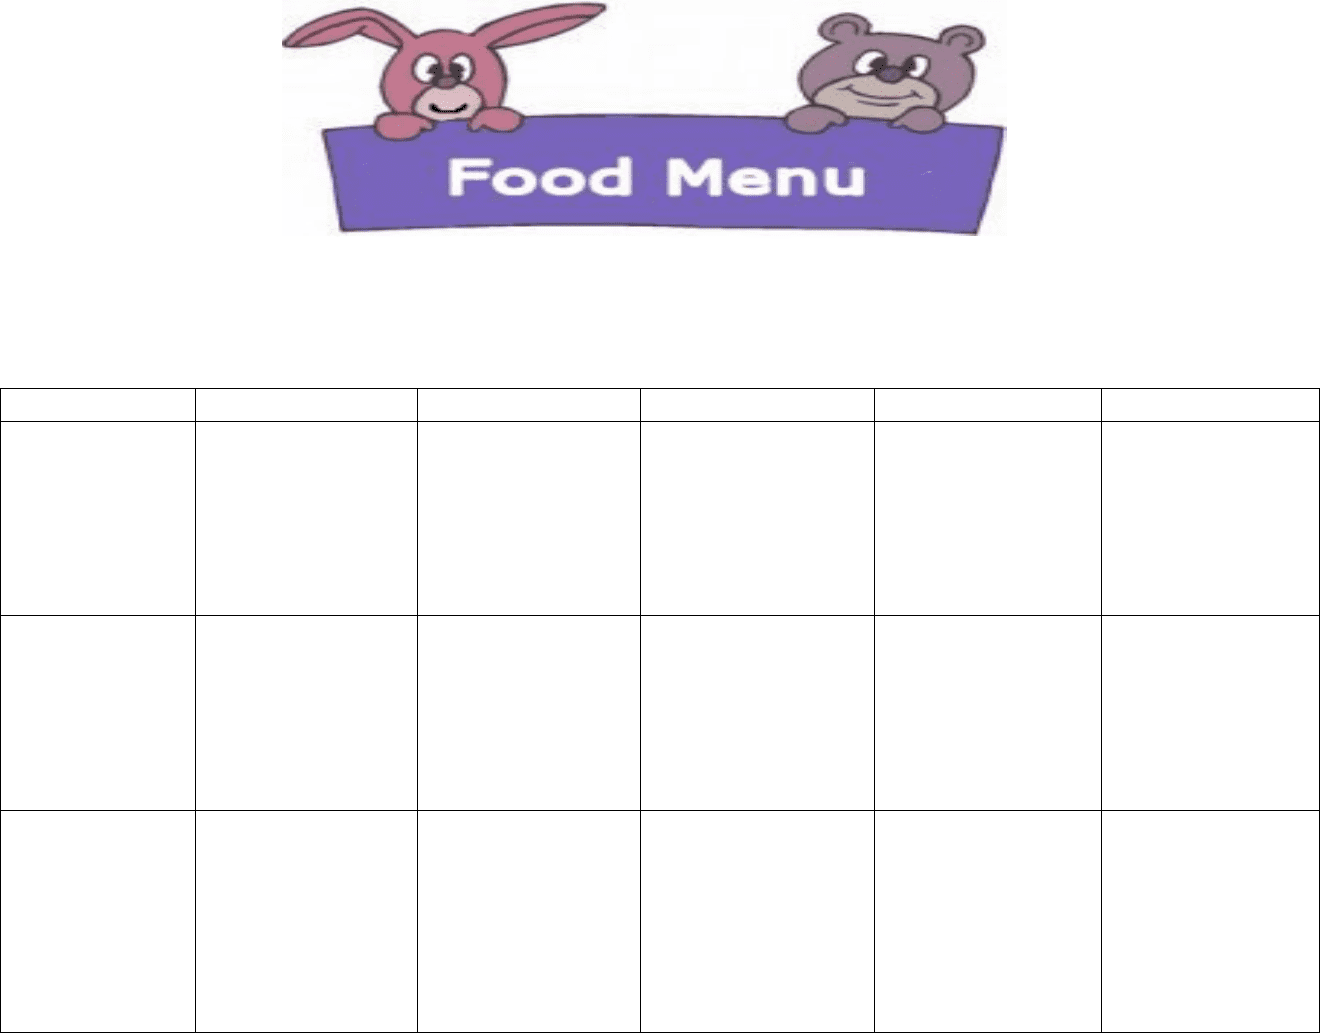 Daycare Food Menu Template In Word And Formats